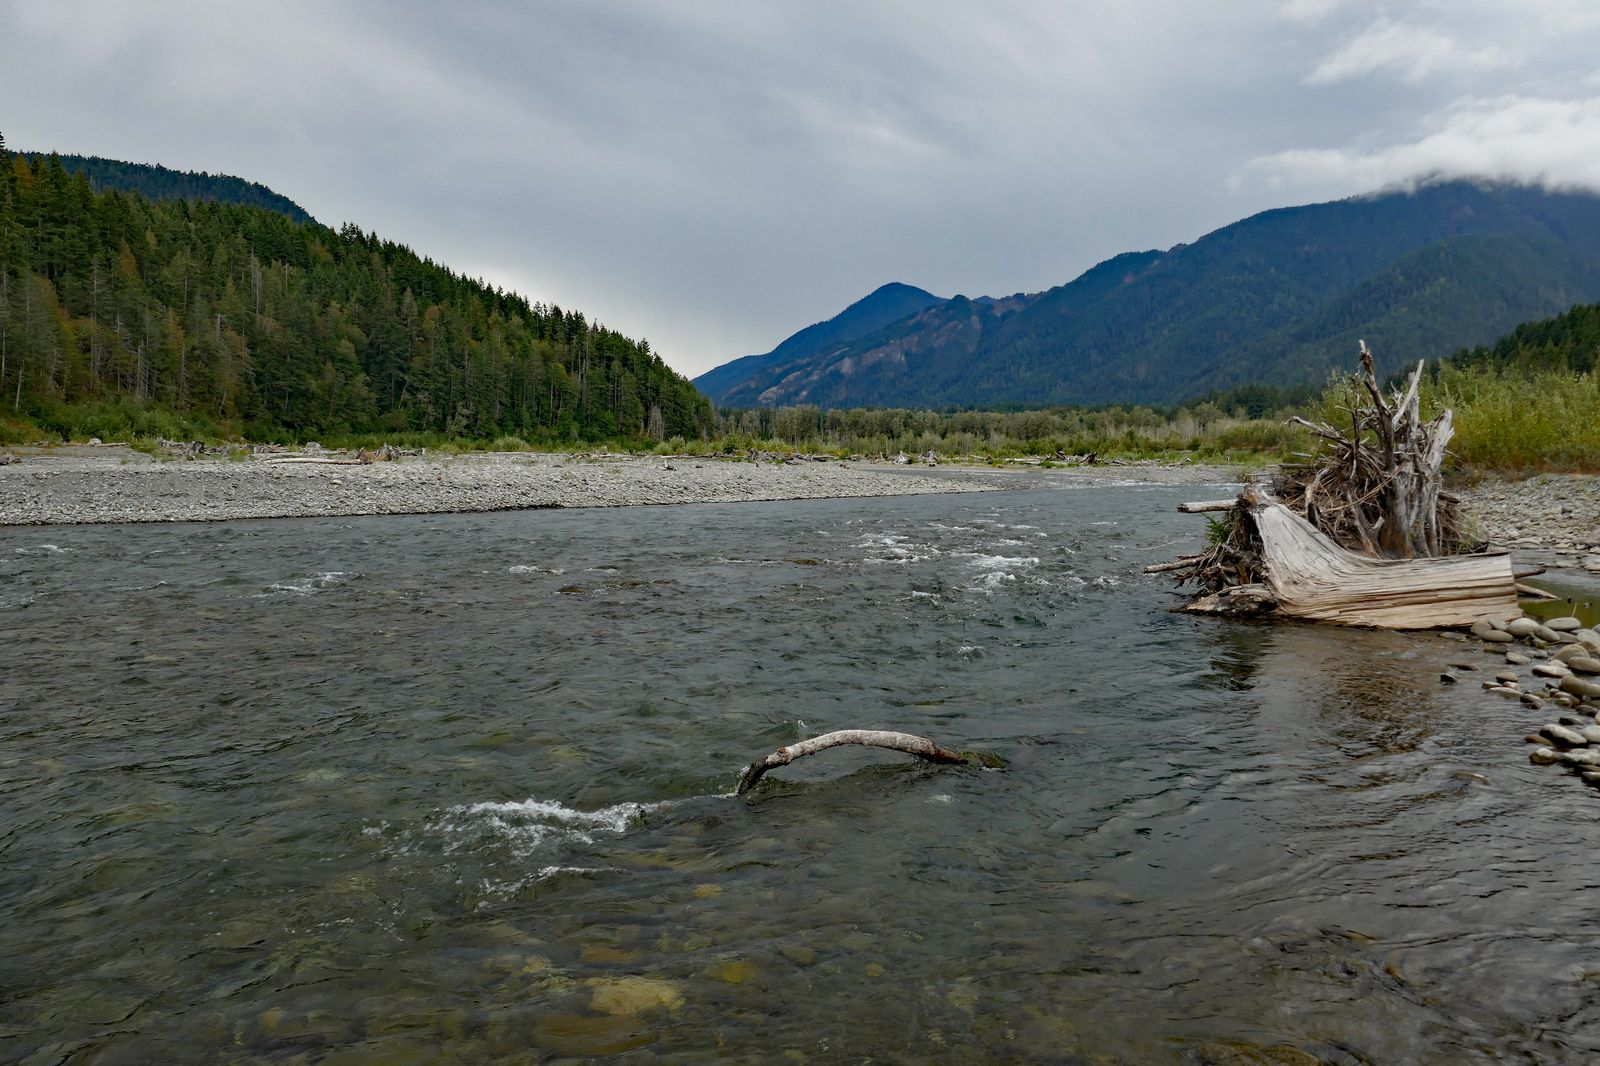 The Elwha River valley